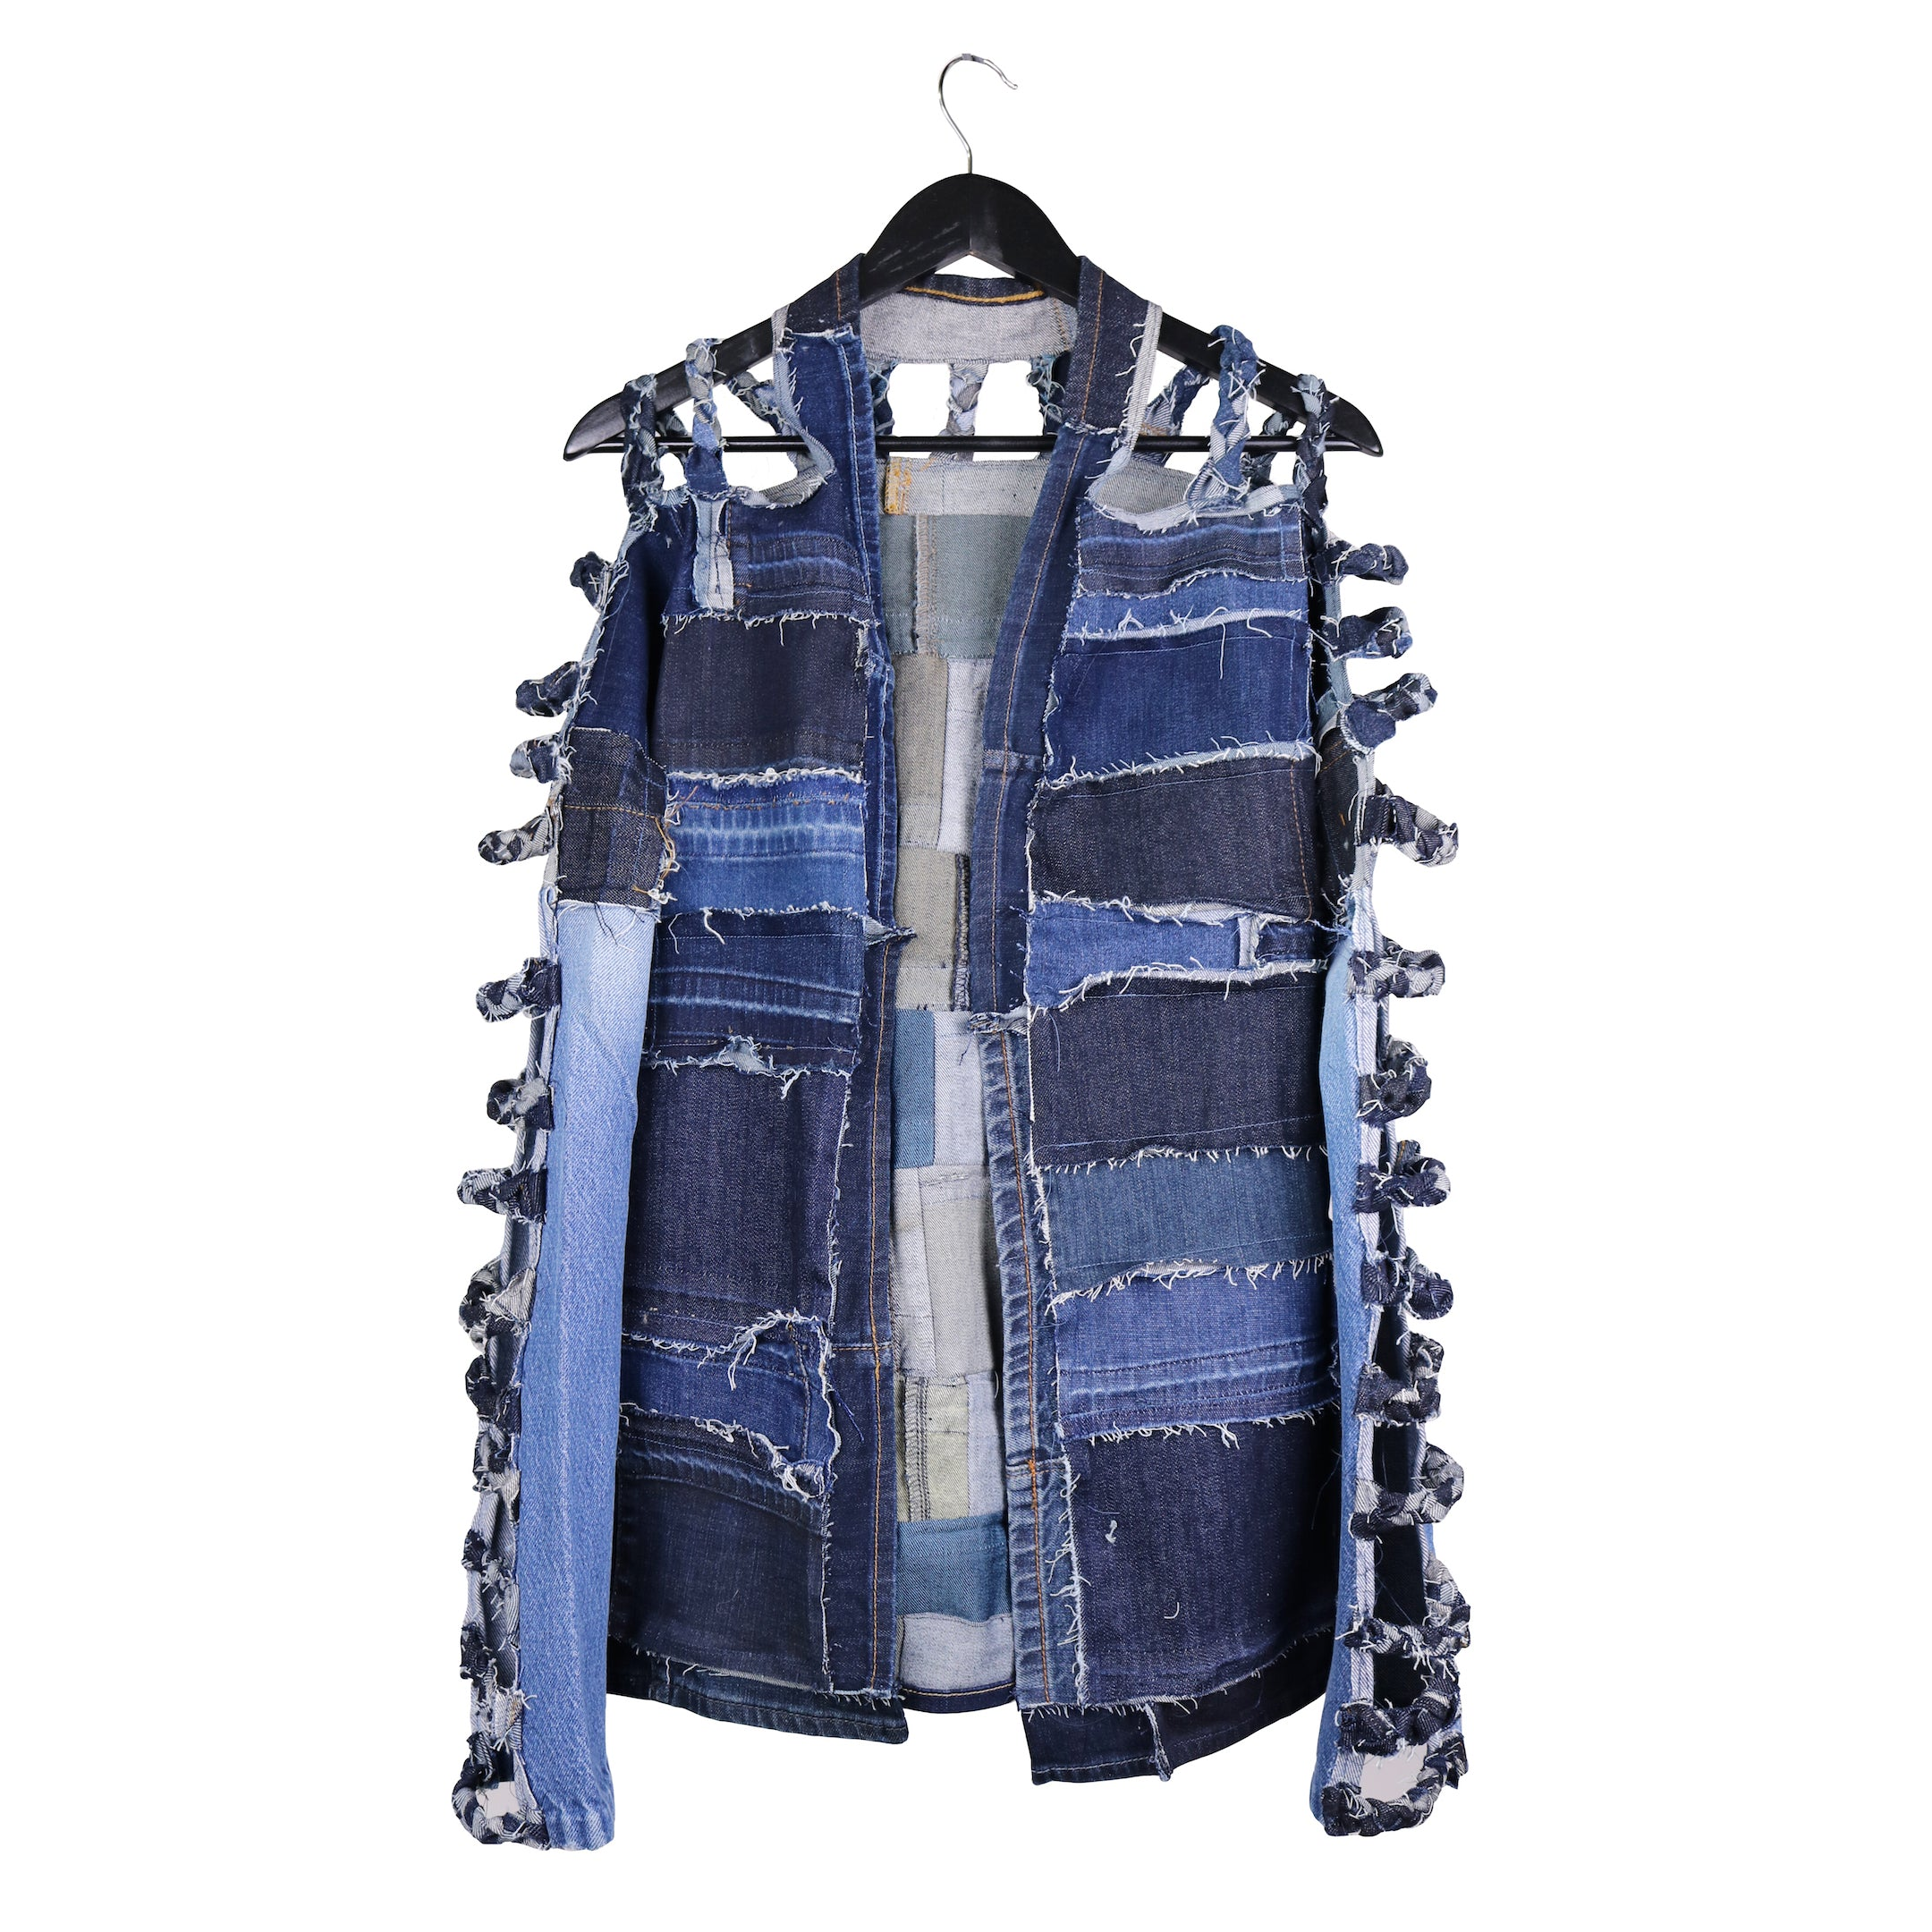 #REMIXbyStevieLeigh reversible upcycled denim jacket by Stevie Leigh Andrascik